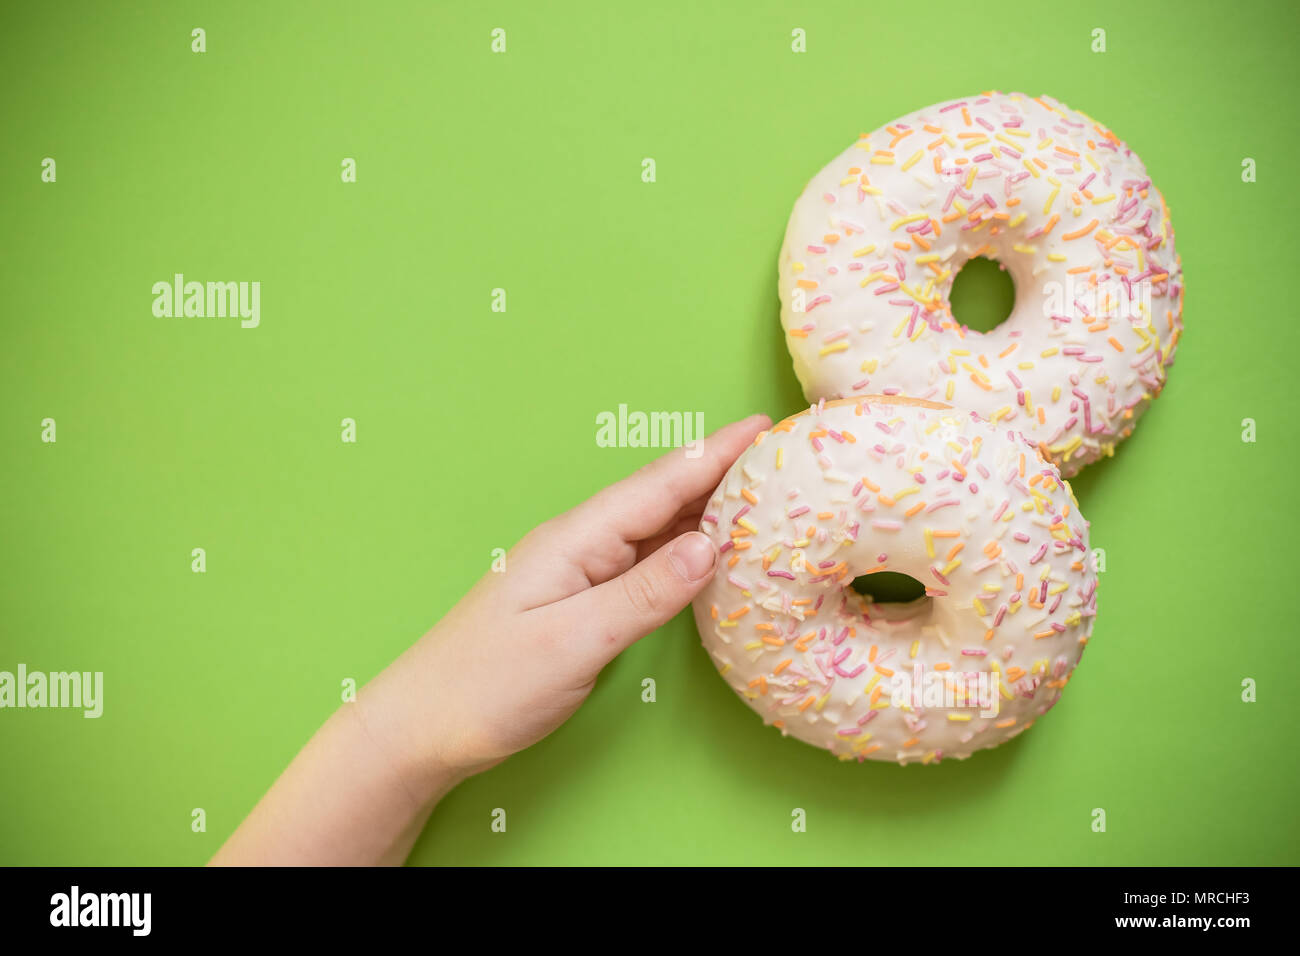 Child hand stealing the last donut from the box. Tasty sweet donuts on green background. Unhealthy sugar dessert. - Stock Image